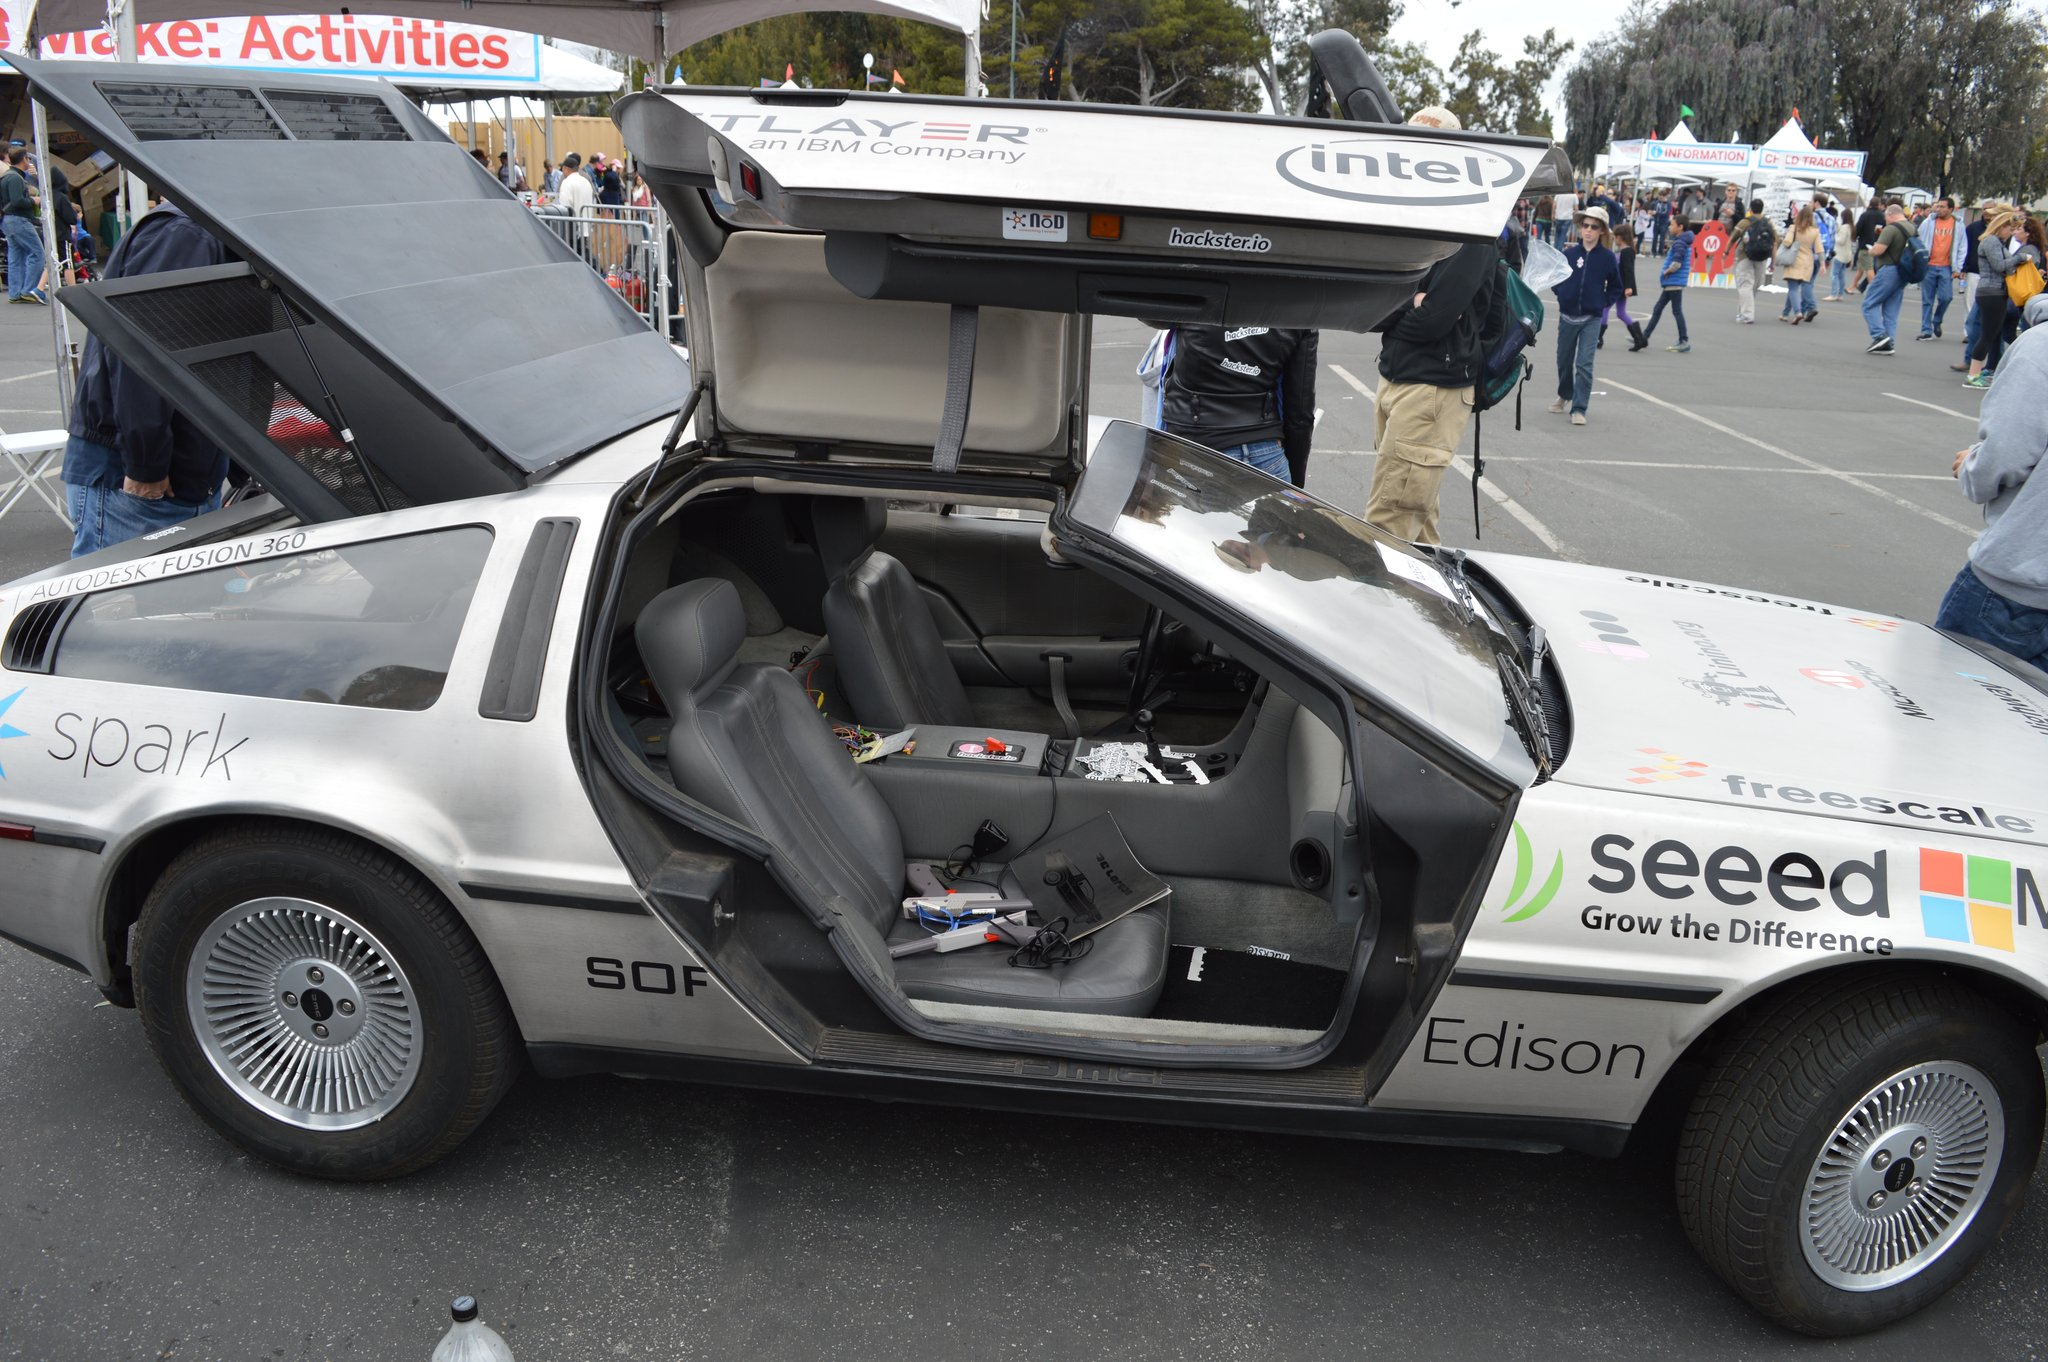 MF15 - Are we back to the future